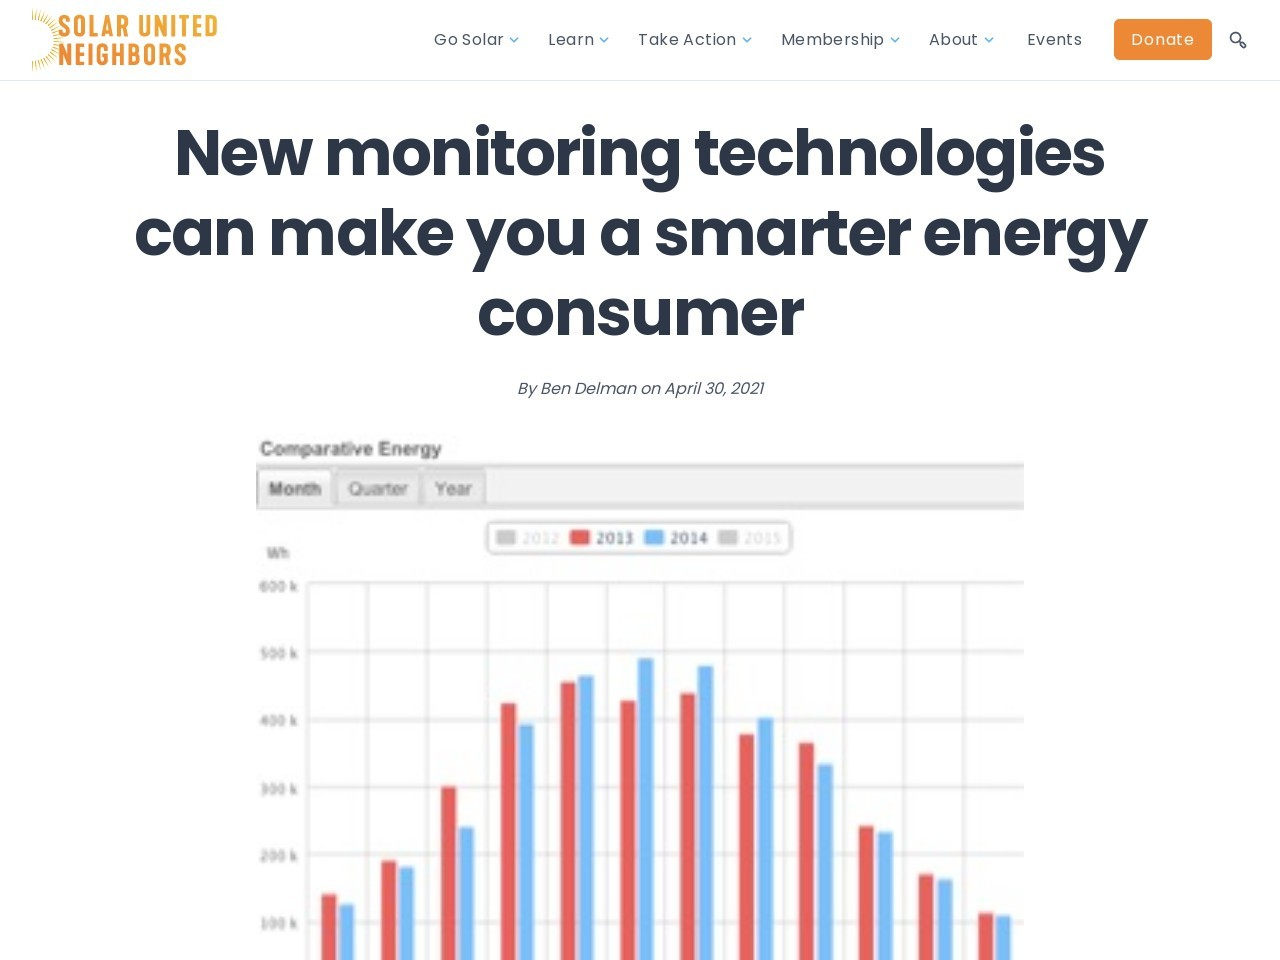 New monitoring technologies can make you a smarter energy consumer